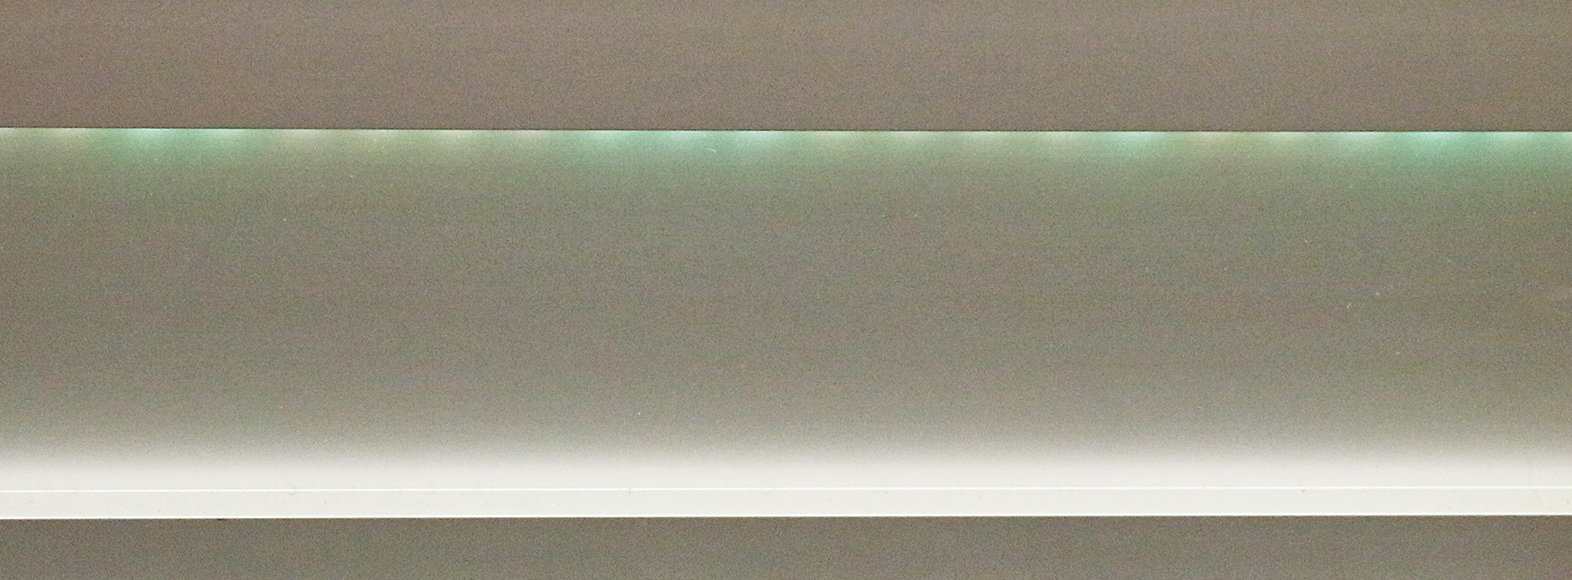 green-led-light-vinson-aluminum-baseboard-1